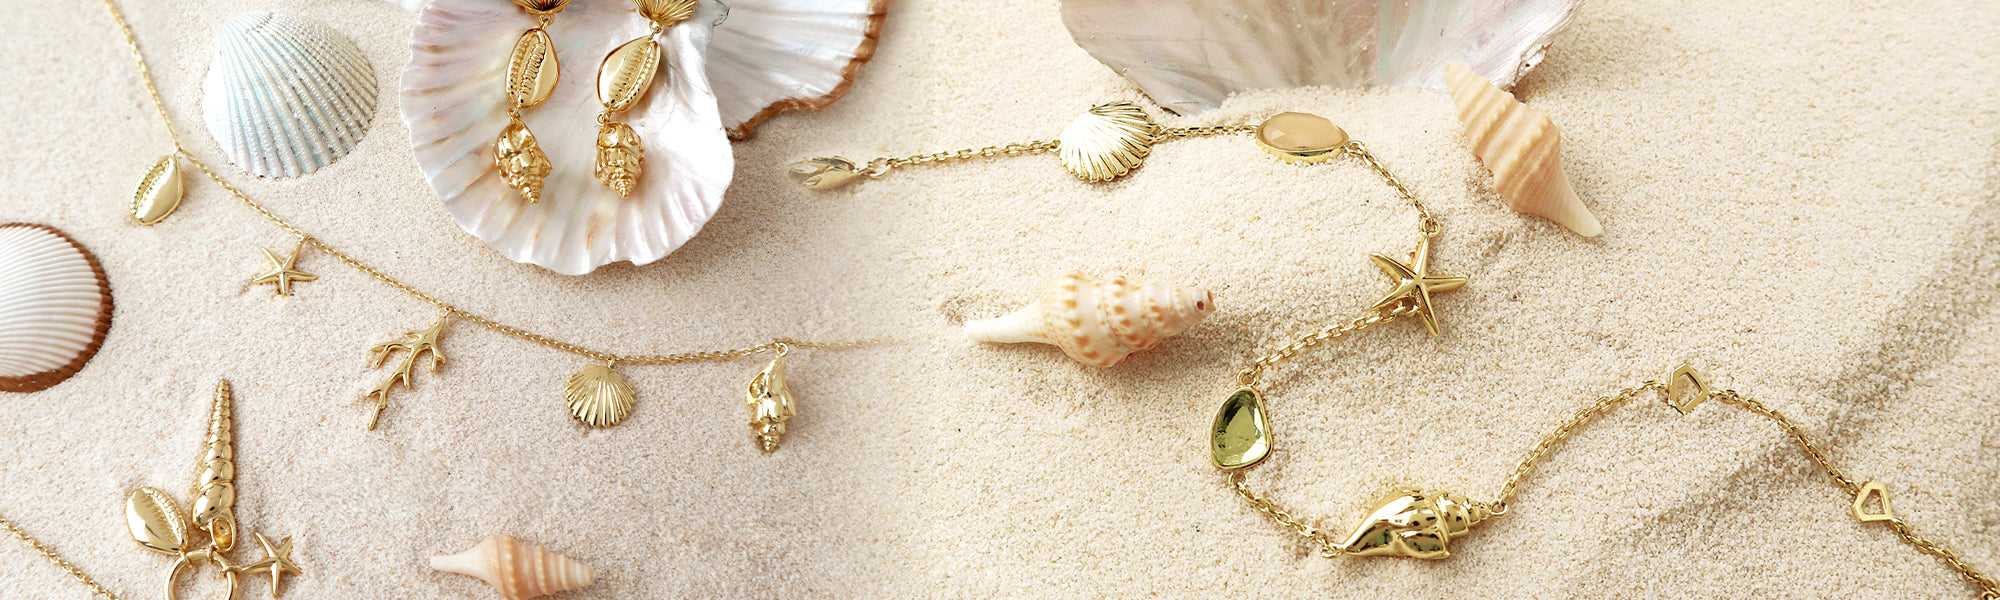 5 Reasons Why You Need Seashell Jewelry